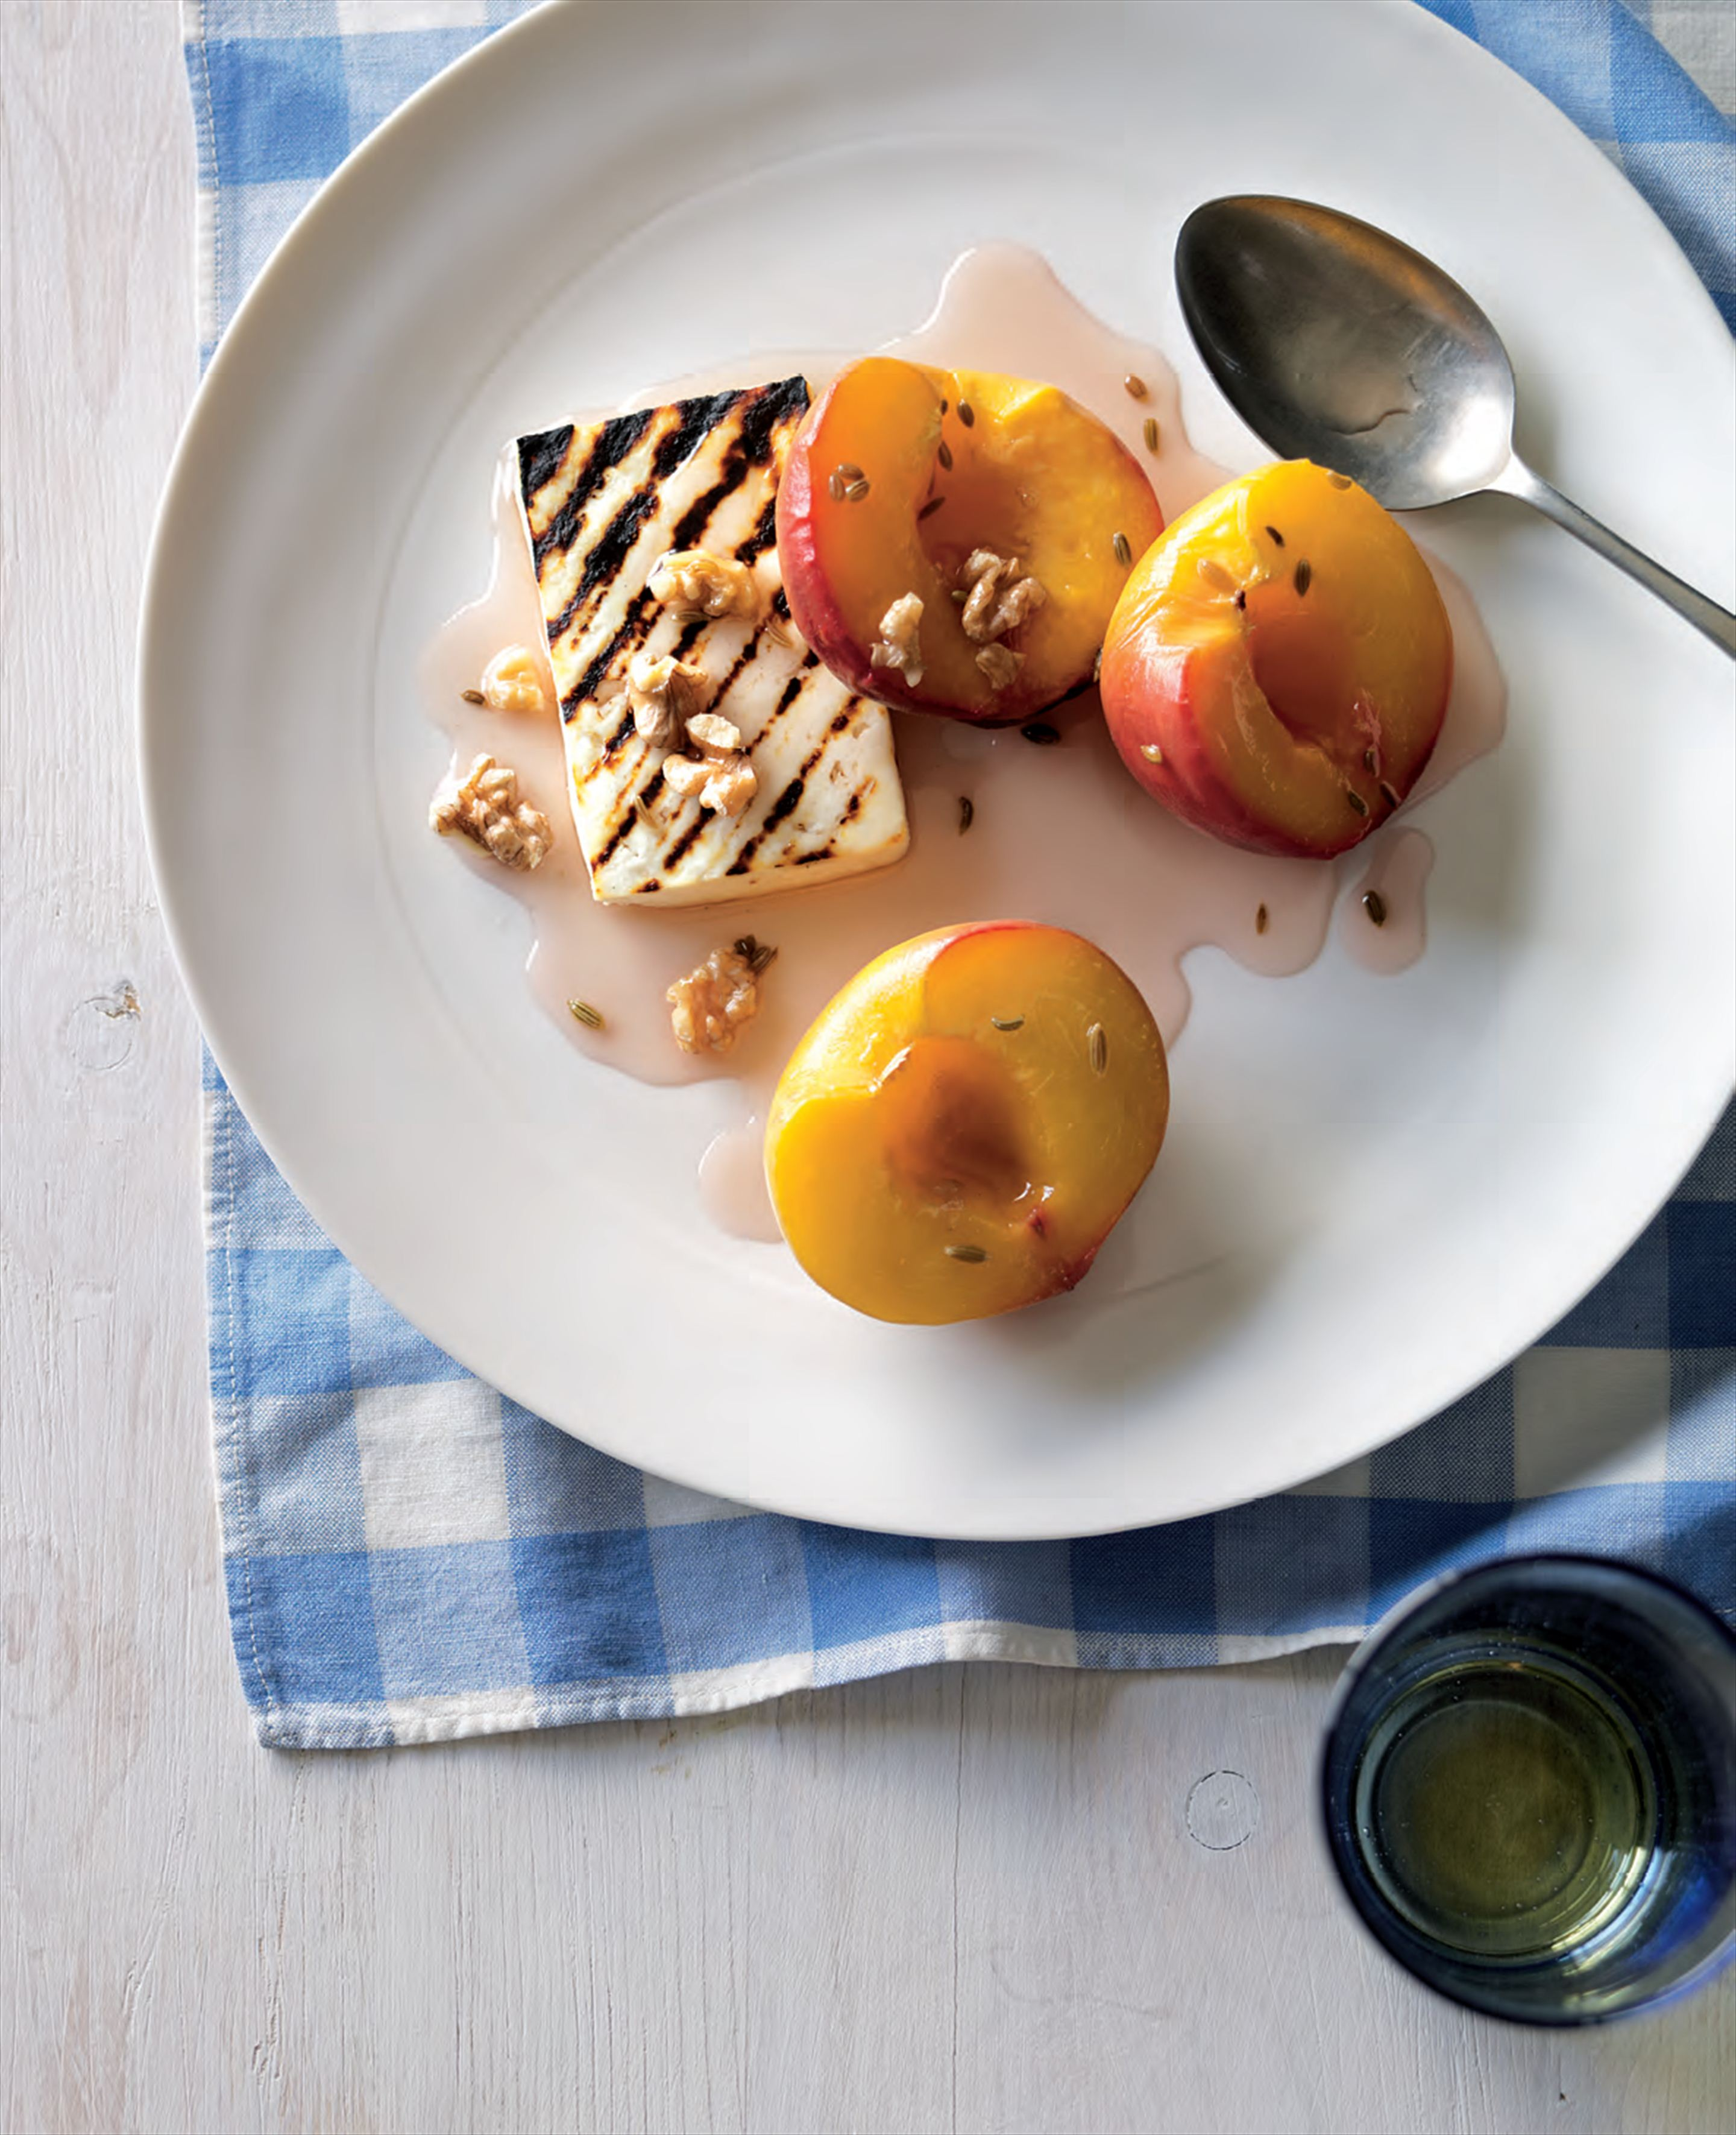 Chargrilled manouri served with honey-baked peaches